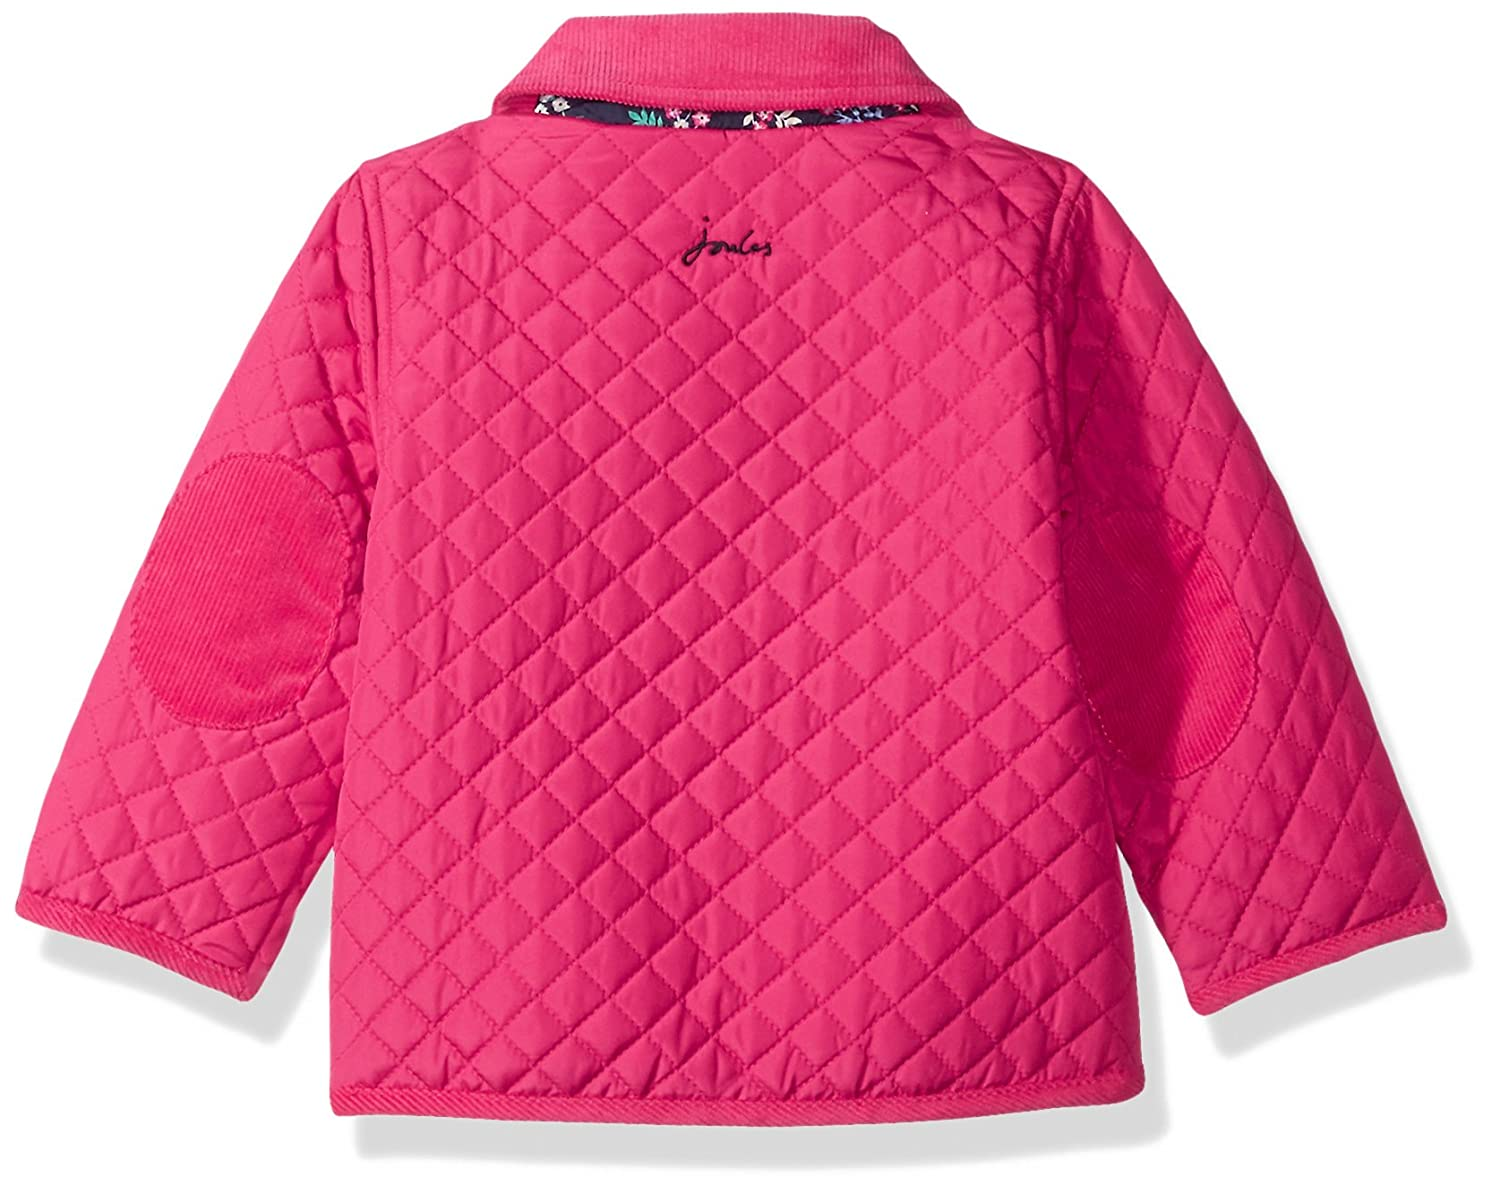 b0c095dfa Amazon.com  Joules Baby Girls  Mabel Quilted Coat  Clothing